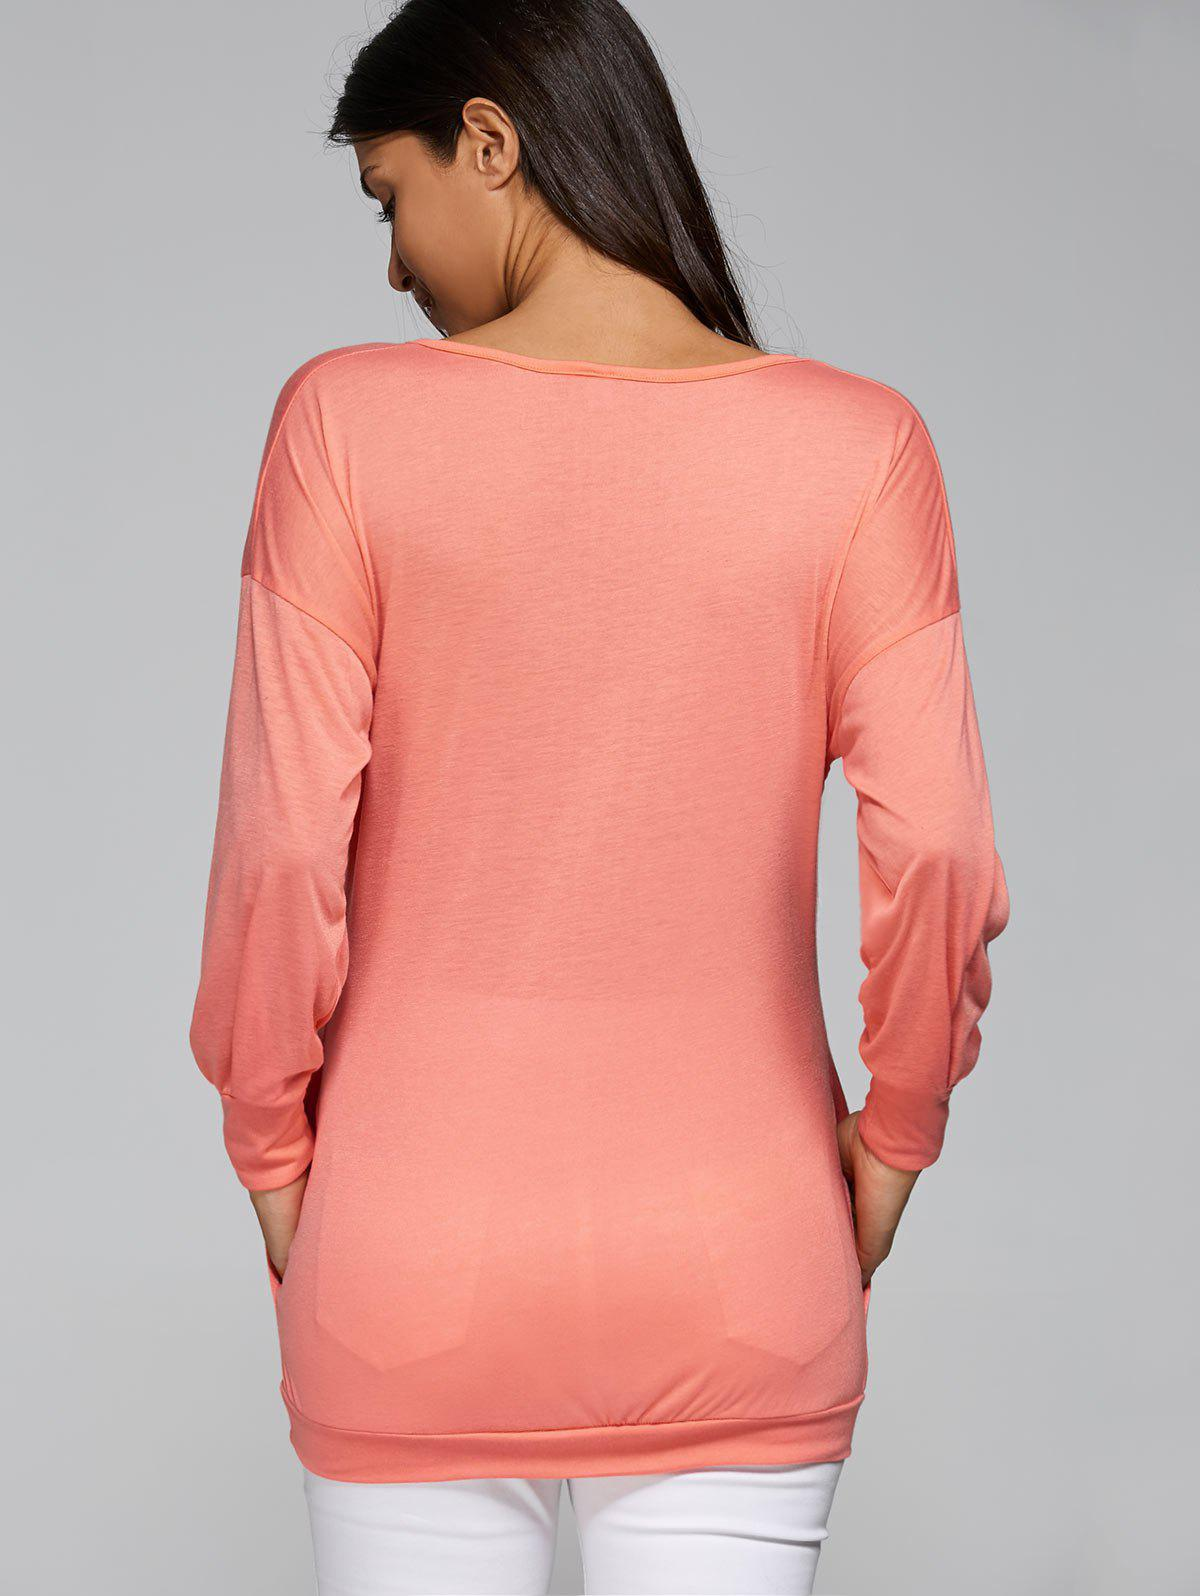 Manches col V long T-shirt - ROSE PÂLE M